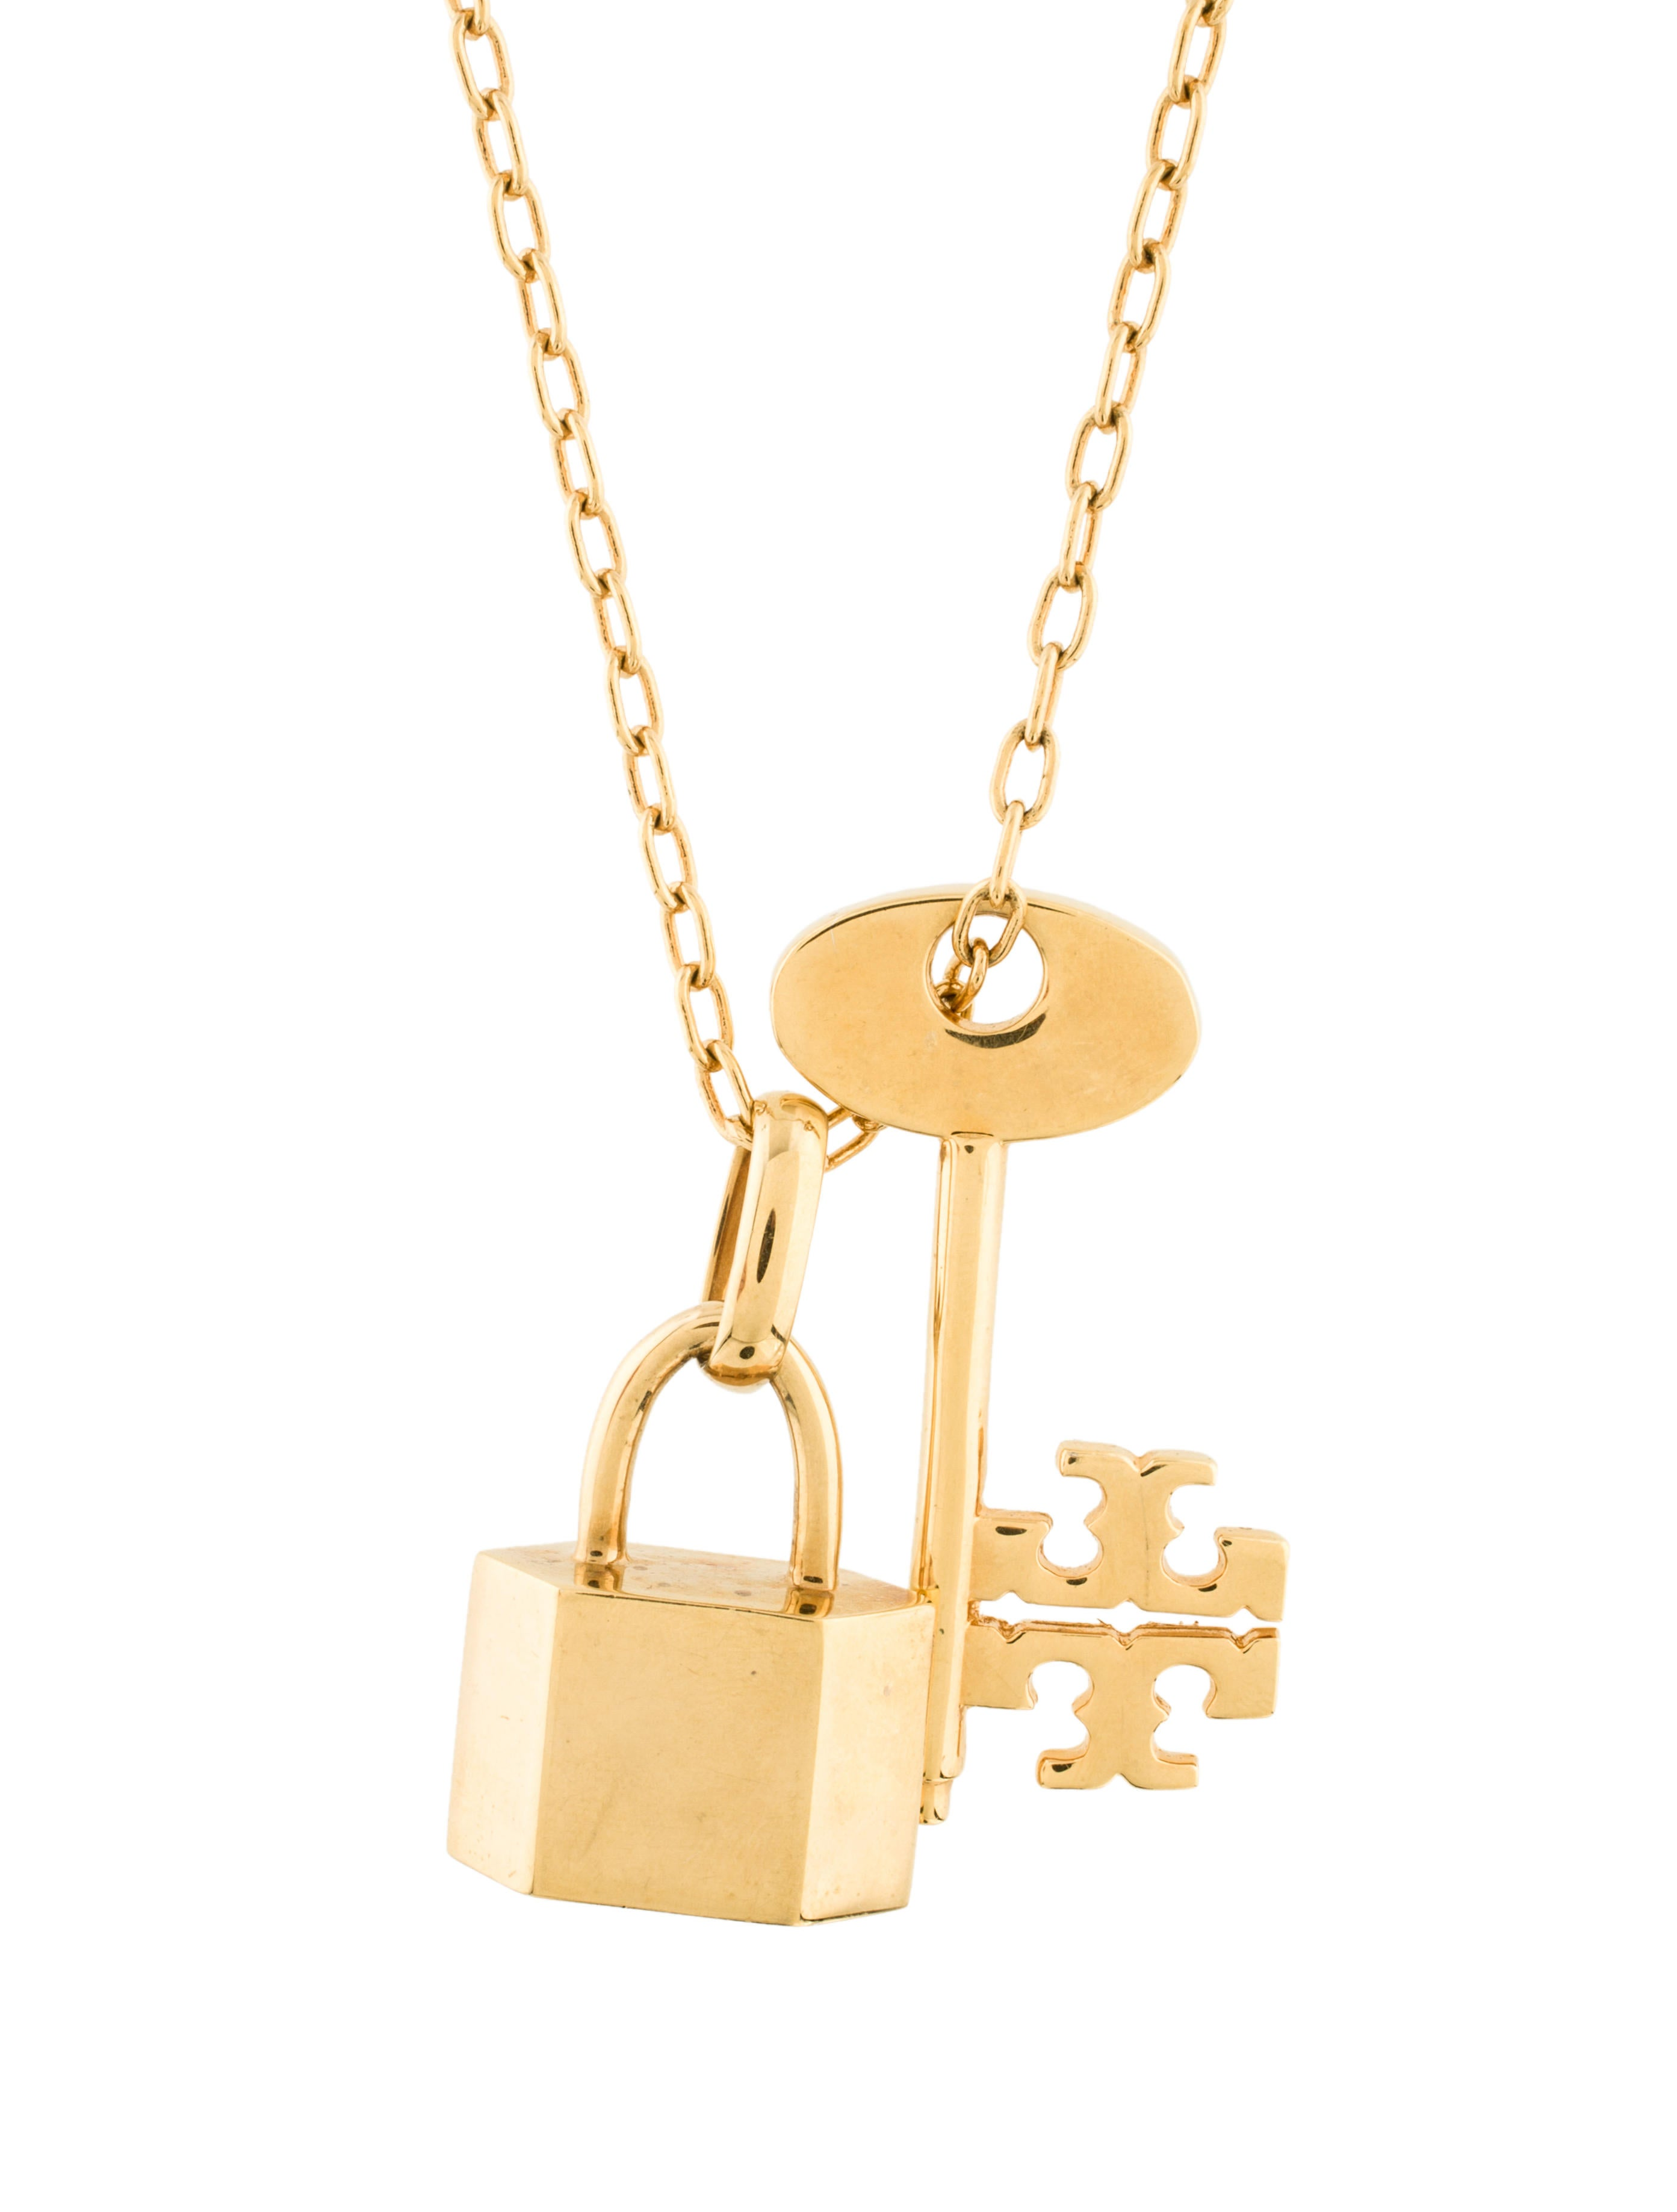 Tory Burch Lock Amp Key Chain Link Necklace Necklaces